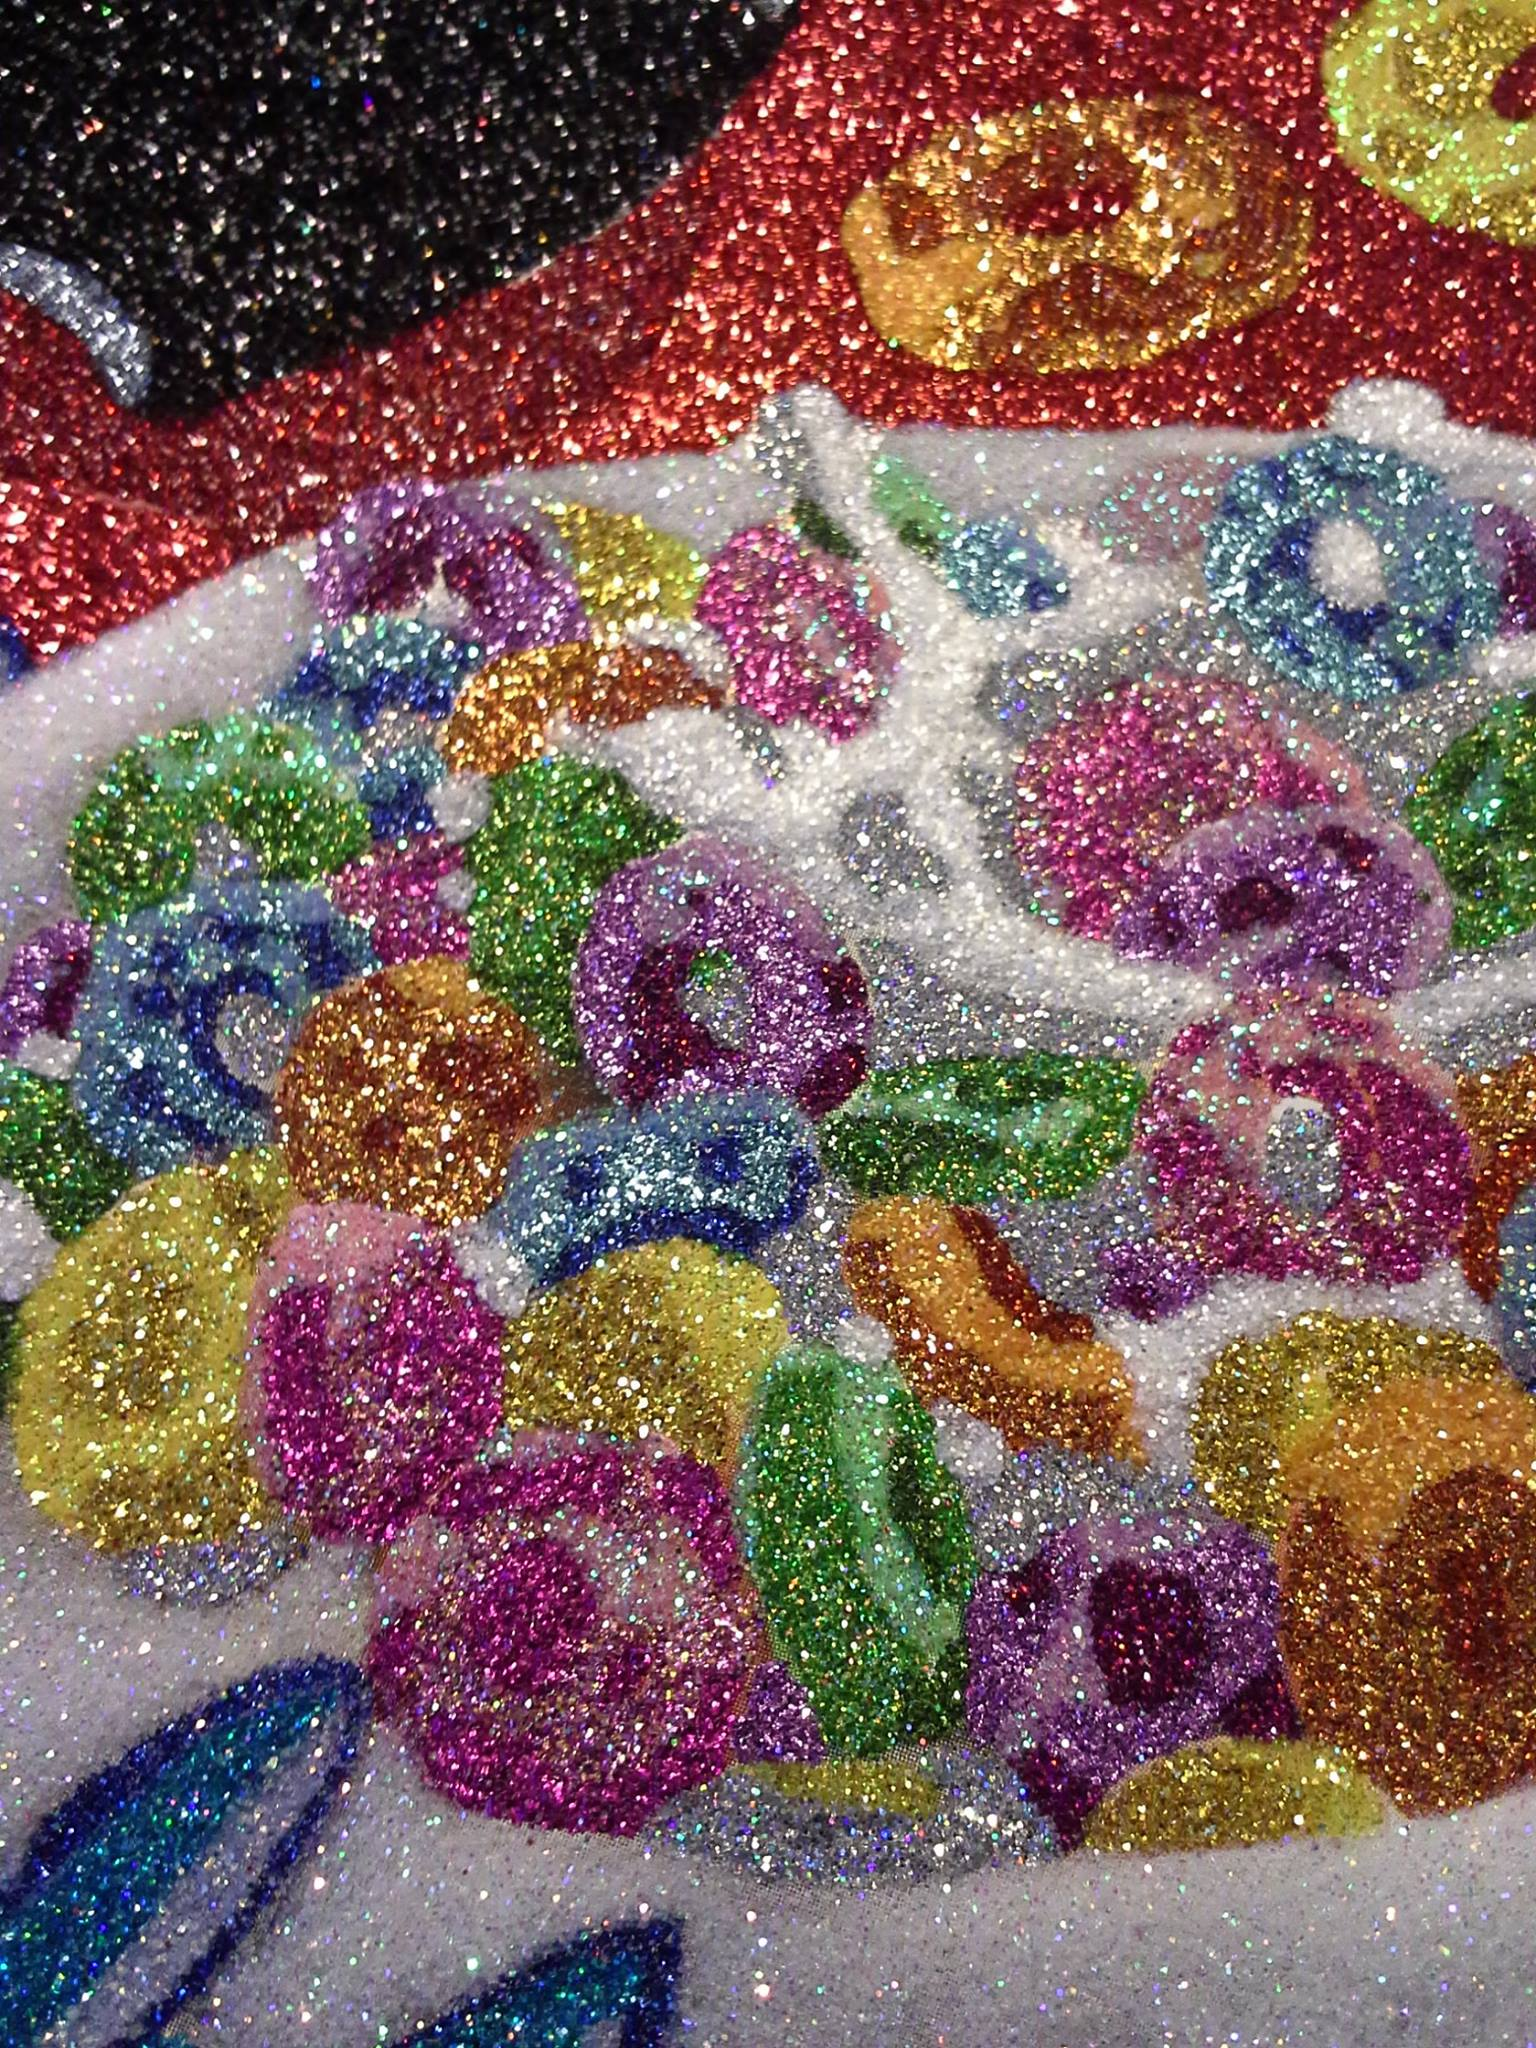 Glitter Pop Art - closeup fruitloops